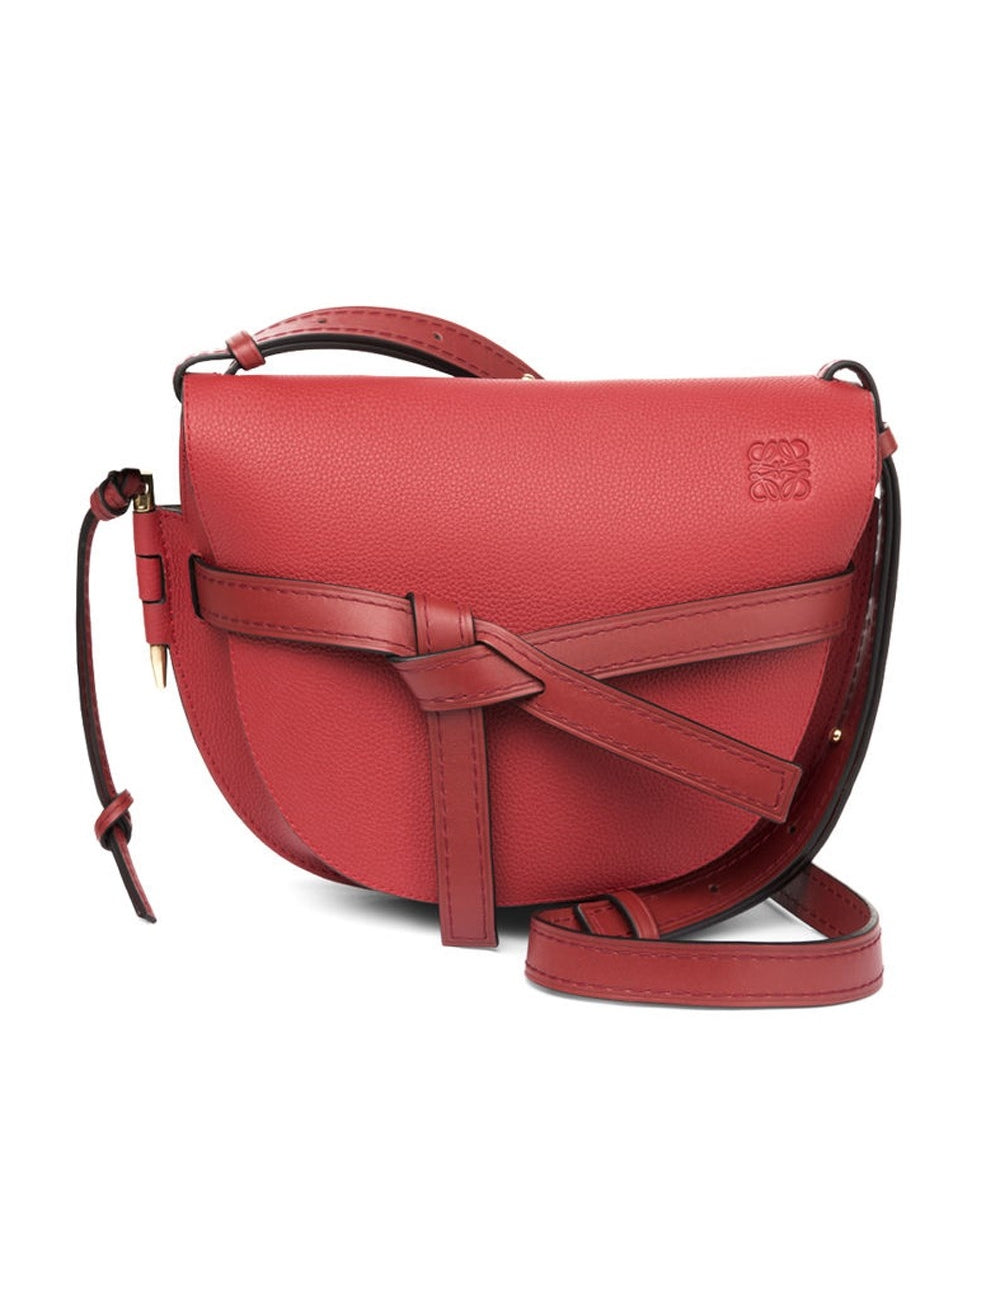 LOEWE 321.12.T20 Gate Small Scarlet Red Burnt Red Crossbody Bag